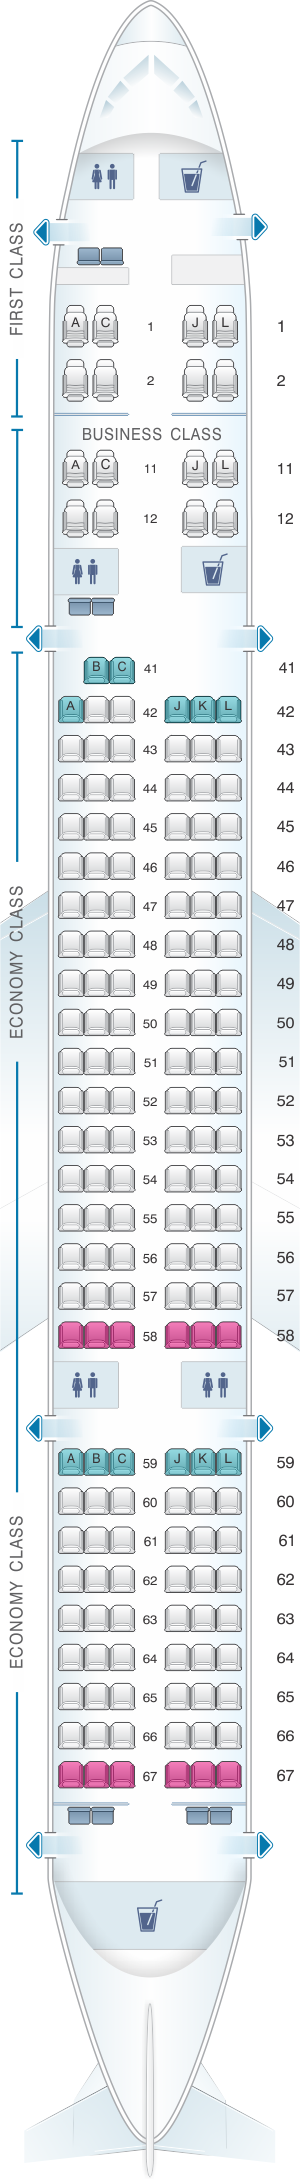 Seat map for Xiamen Airlines Boeing B757 200 174pax